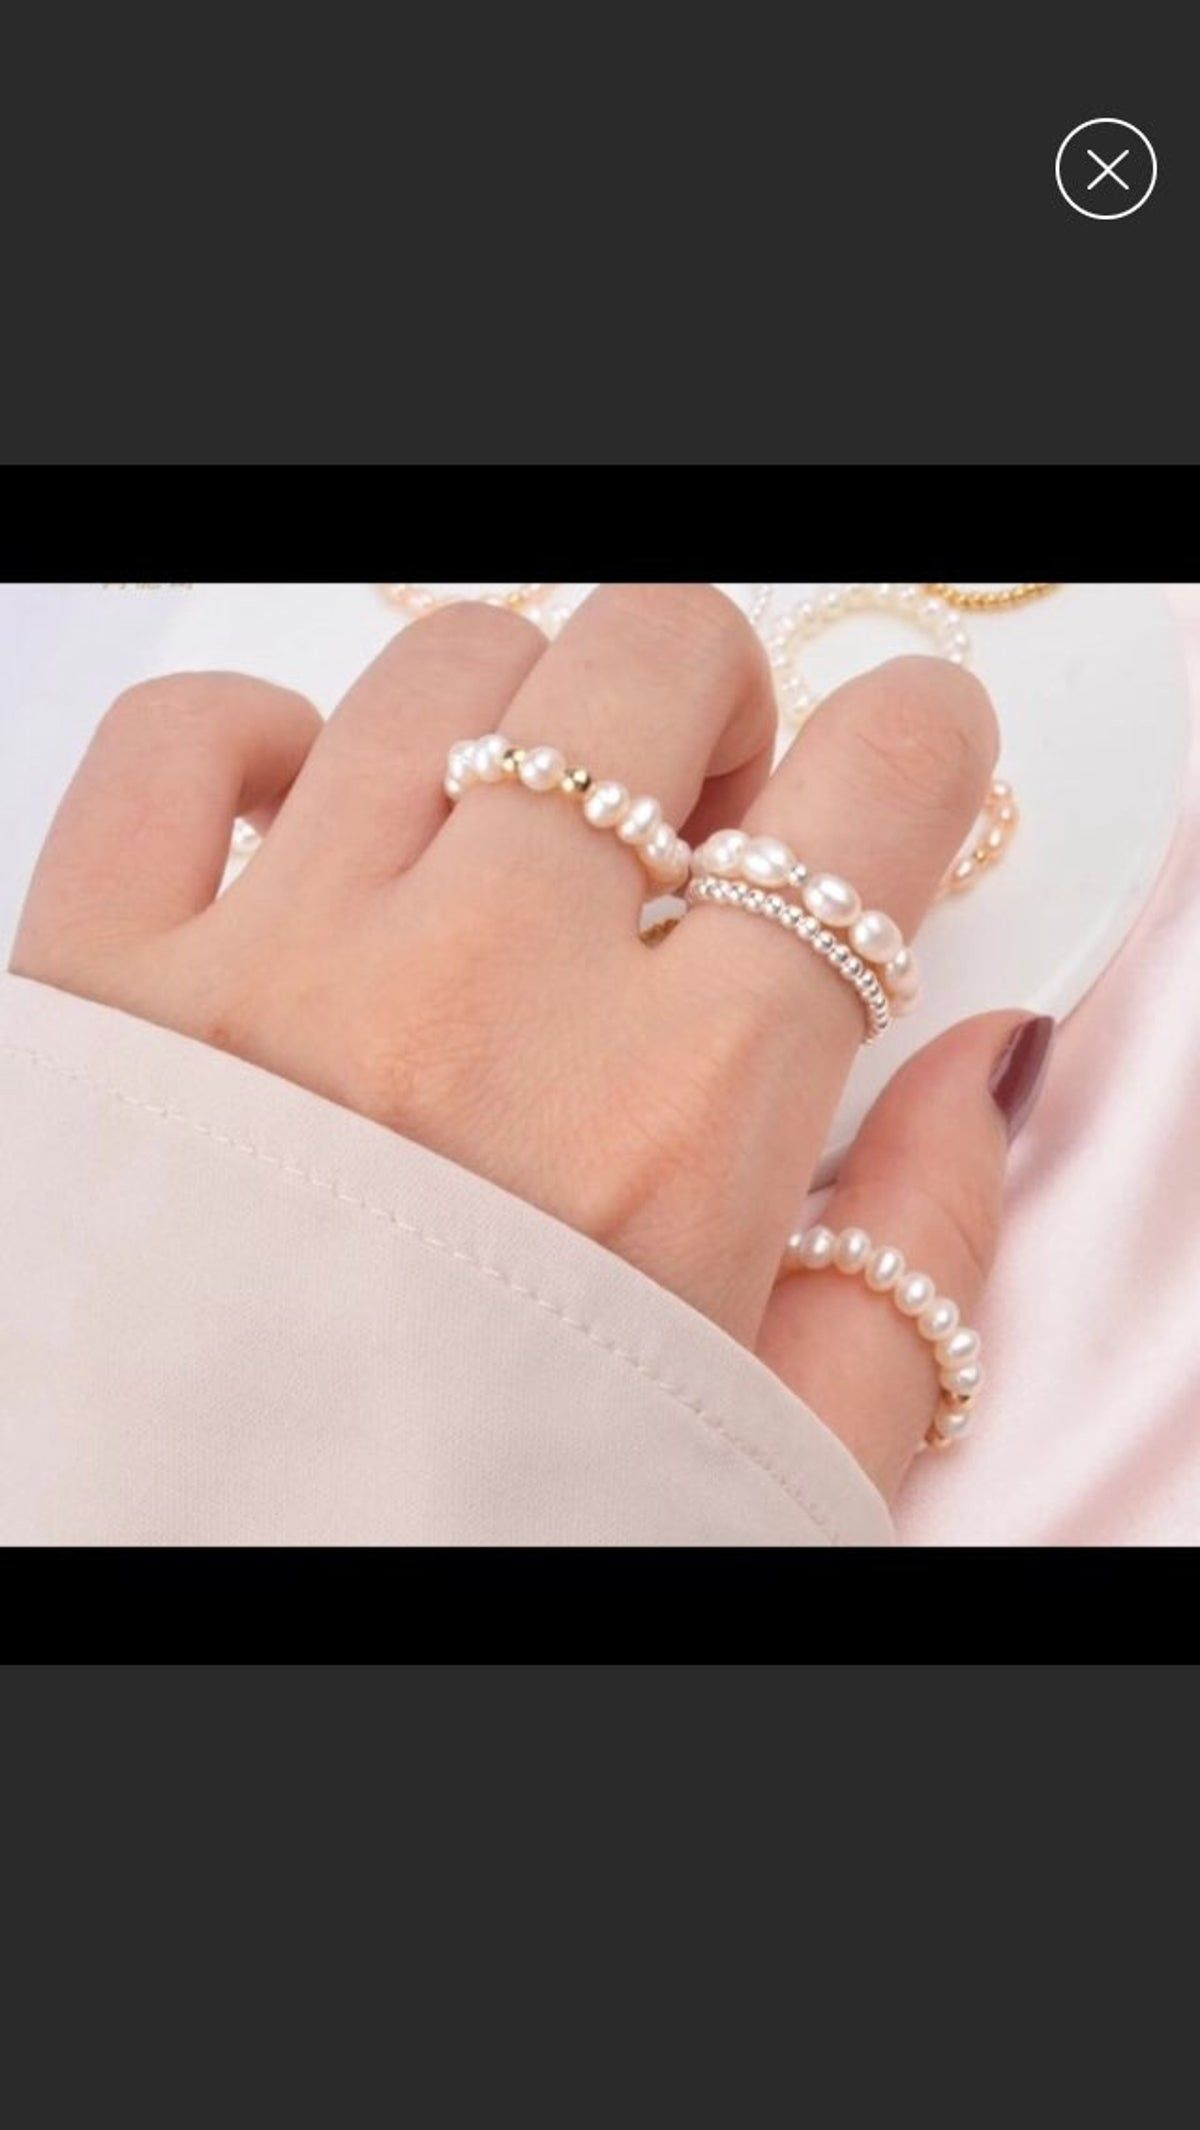 Pink Pearl Toe Ring White Pearl Toe Ring Stretch Stretchy Little Toe Ring Big Toe Ring 925 Sterling Silver Bead Toe Ring BuyAny3+Get1 Free